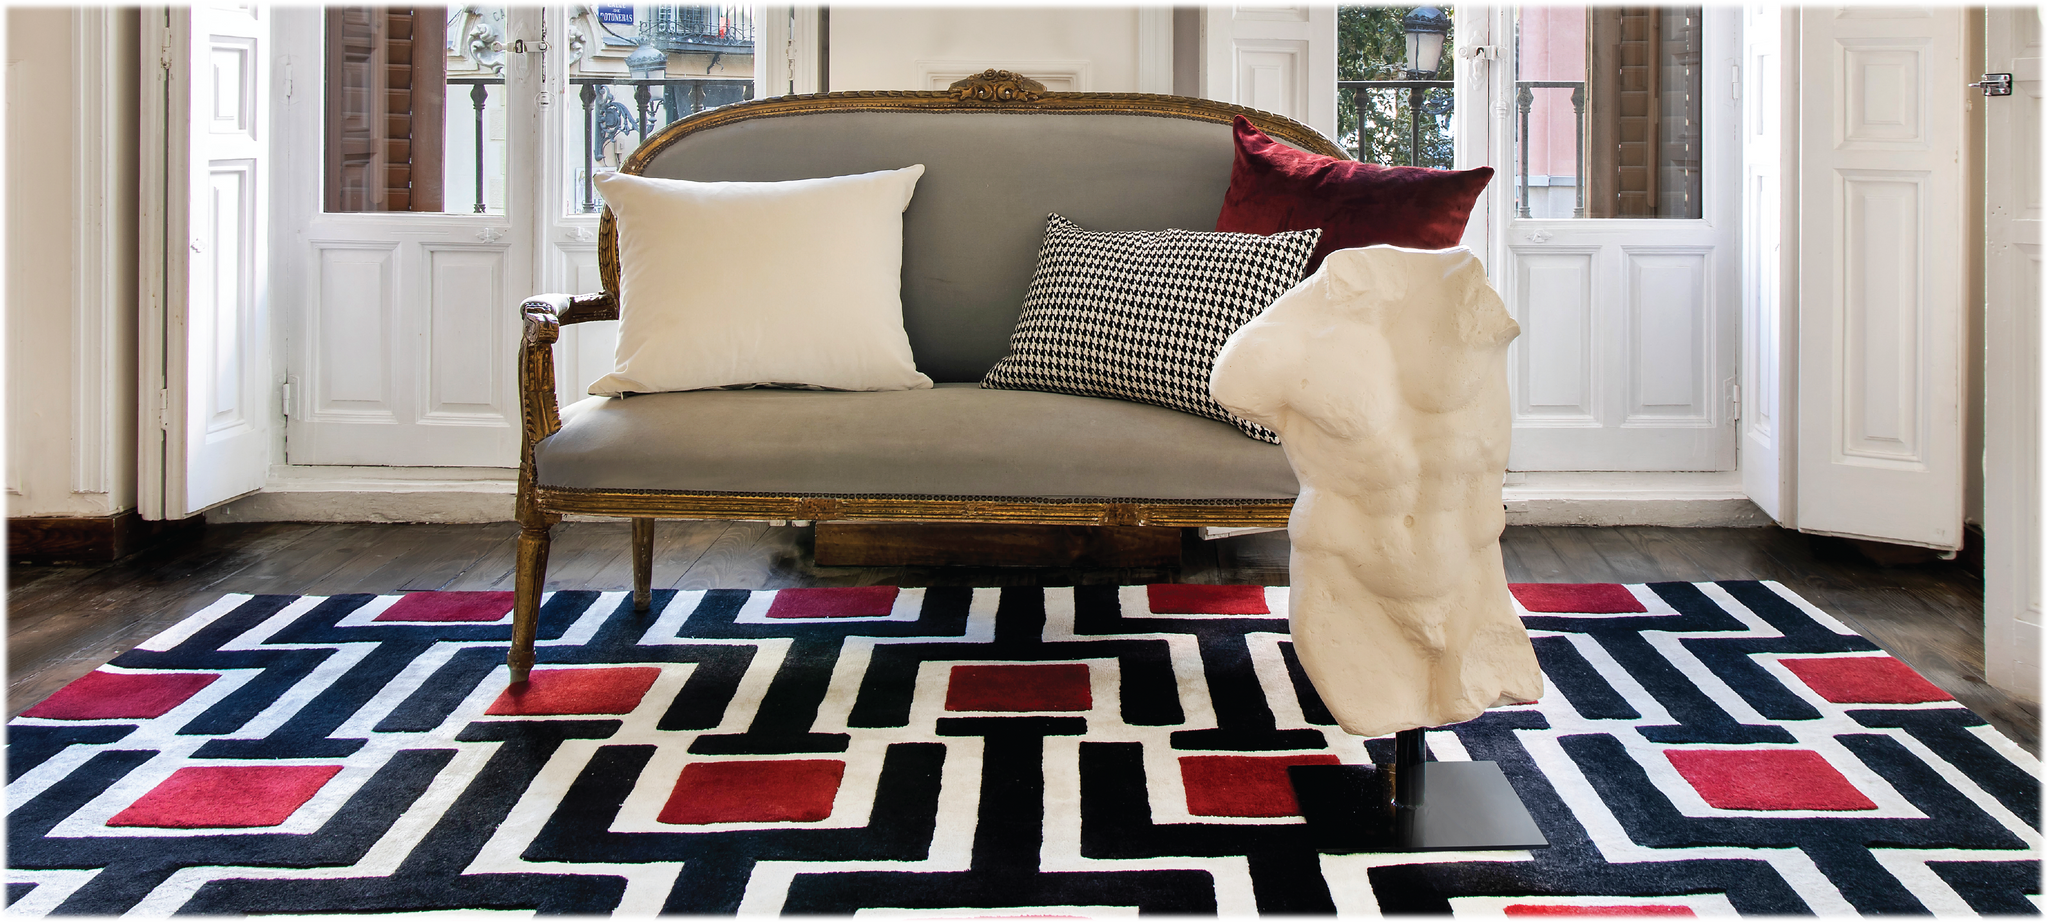 Ellas Home and Contract Rug Collection by Fabian Niguez for Kaymanta